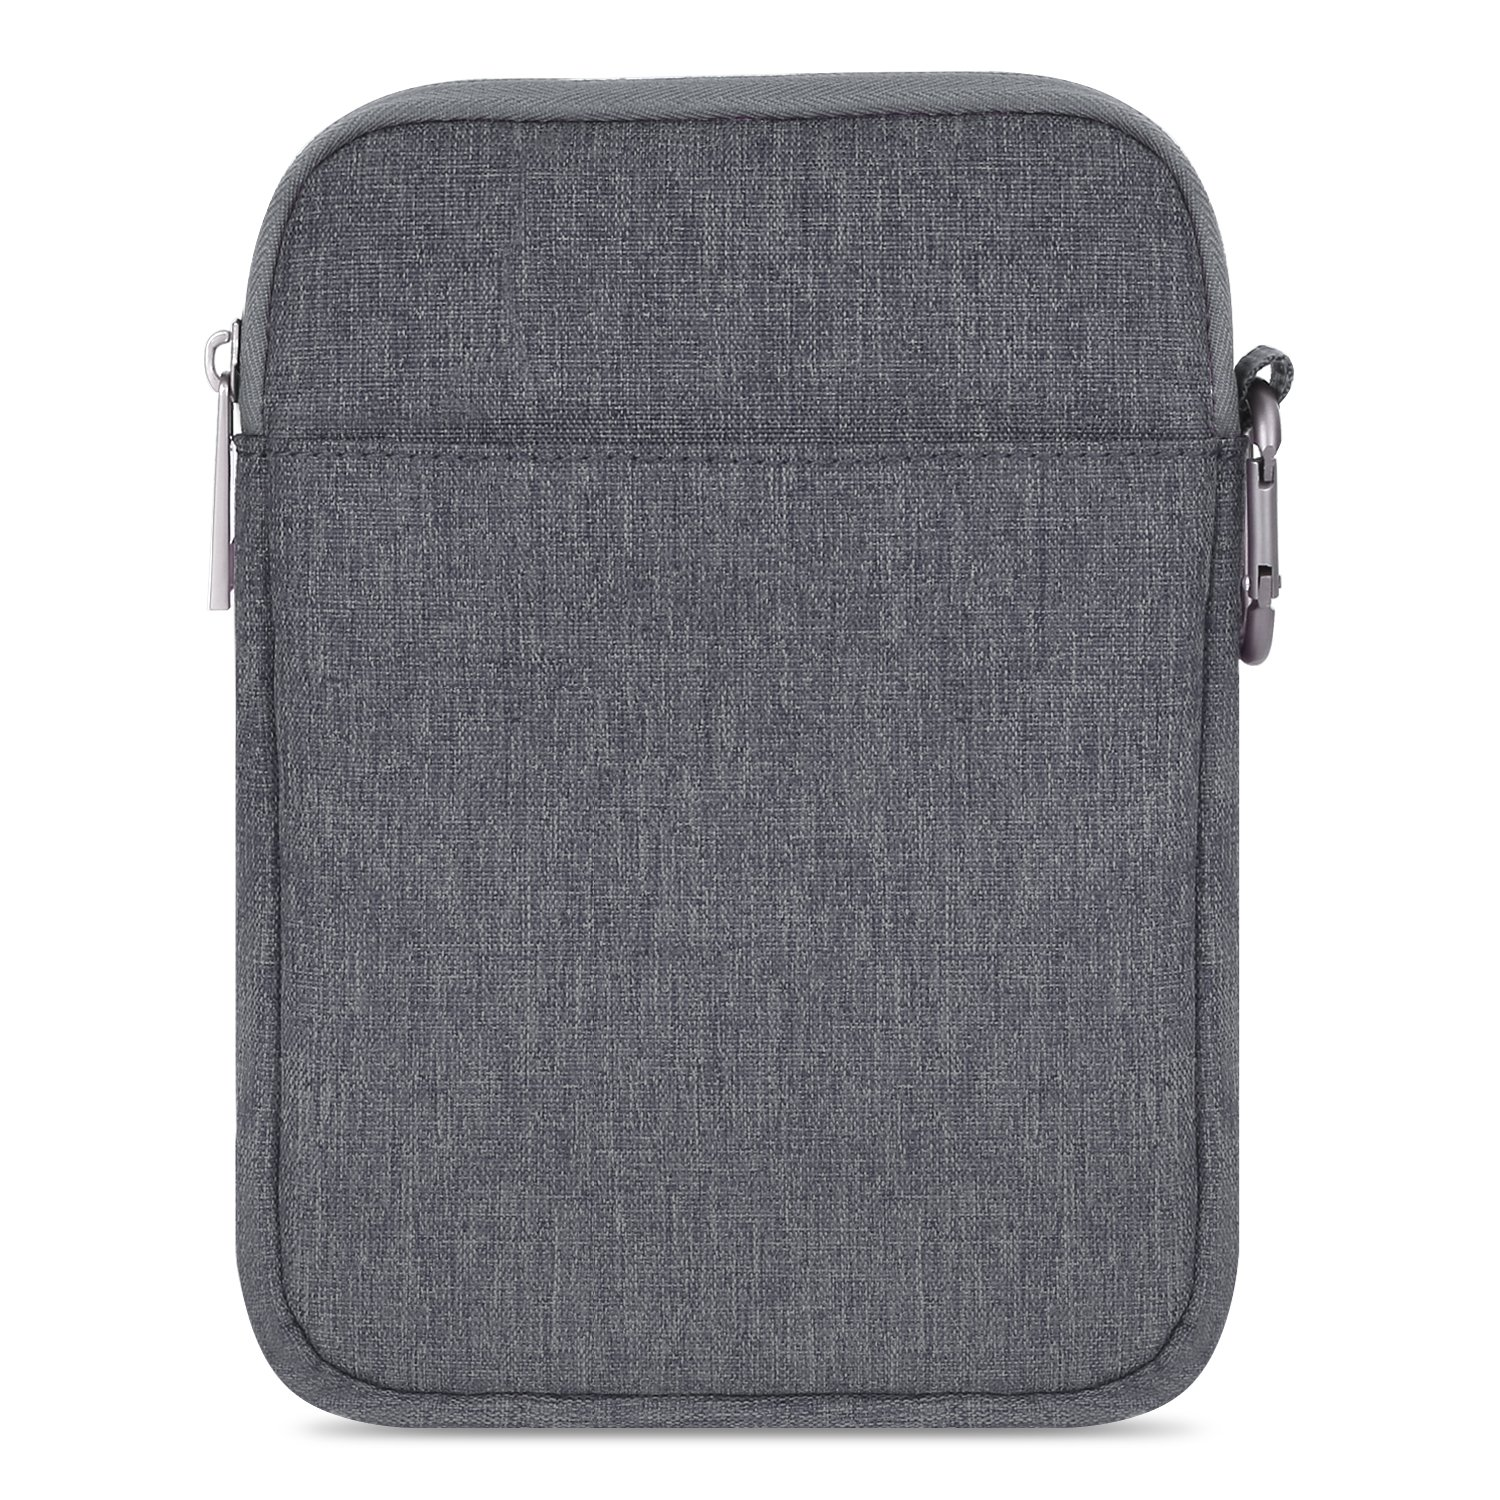 """B01N1S81GB MoKo 6 Inch Kindle Sleeve Case Fits for All-New Kindle 10th Generation 2019/Kindle Paperwhite 2018, Nylon Cover Pouch Bag for Kindle Voyage/Kindle (8th Gen, 2016)/Kindle Oasis 6"""" E-Reader, Dark Gray 81SG2cgDlfL"""